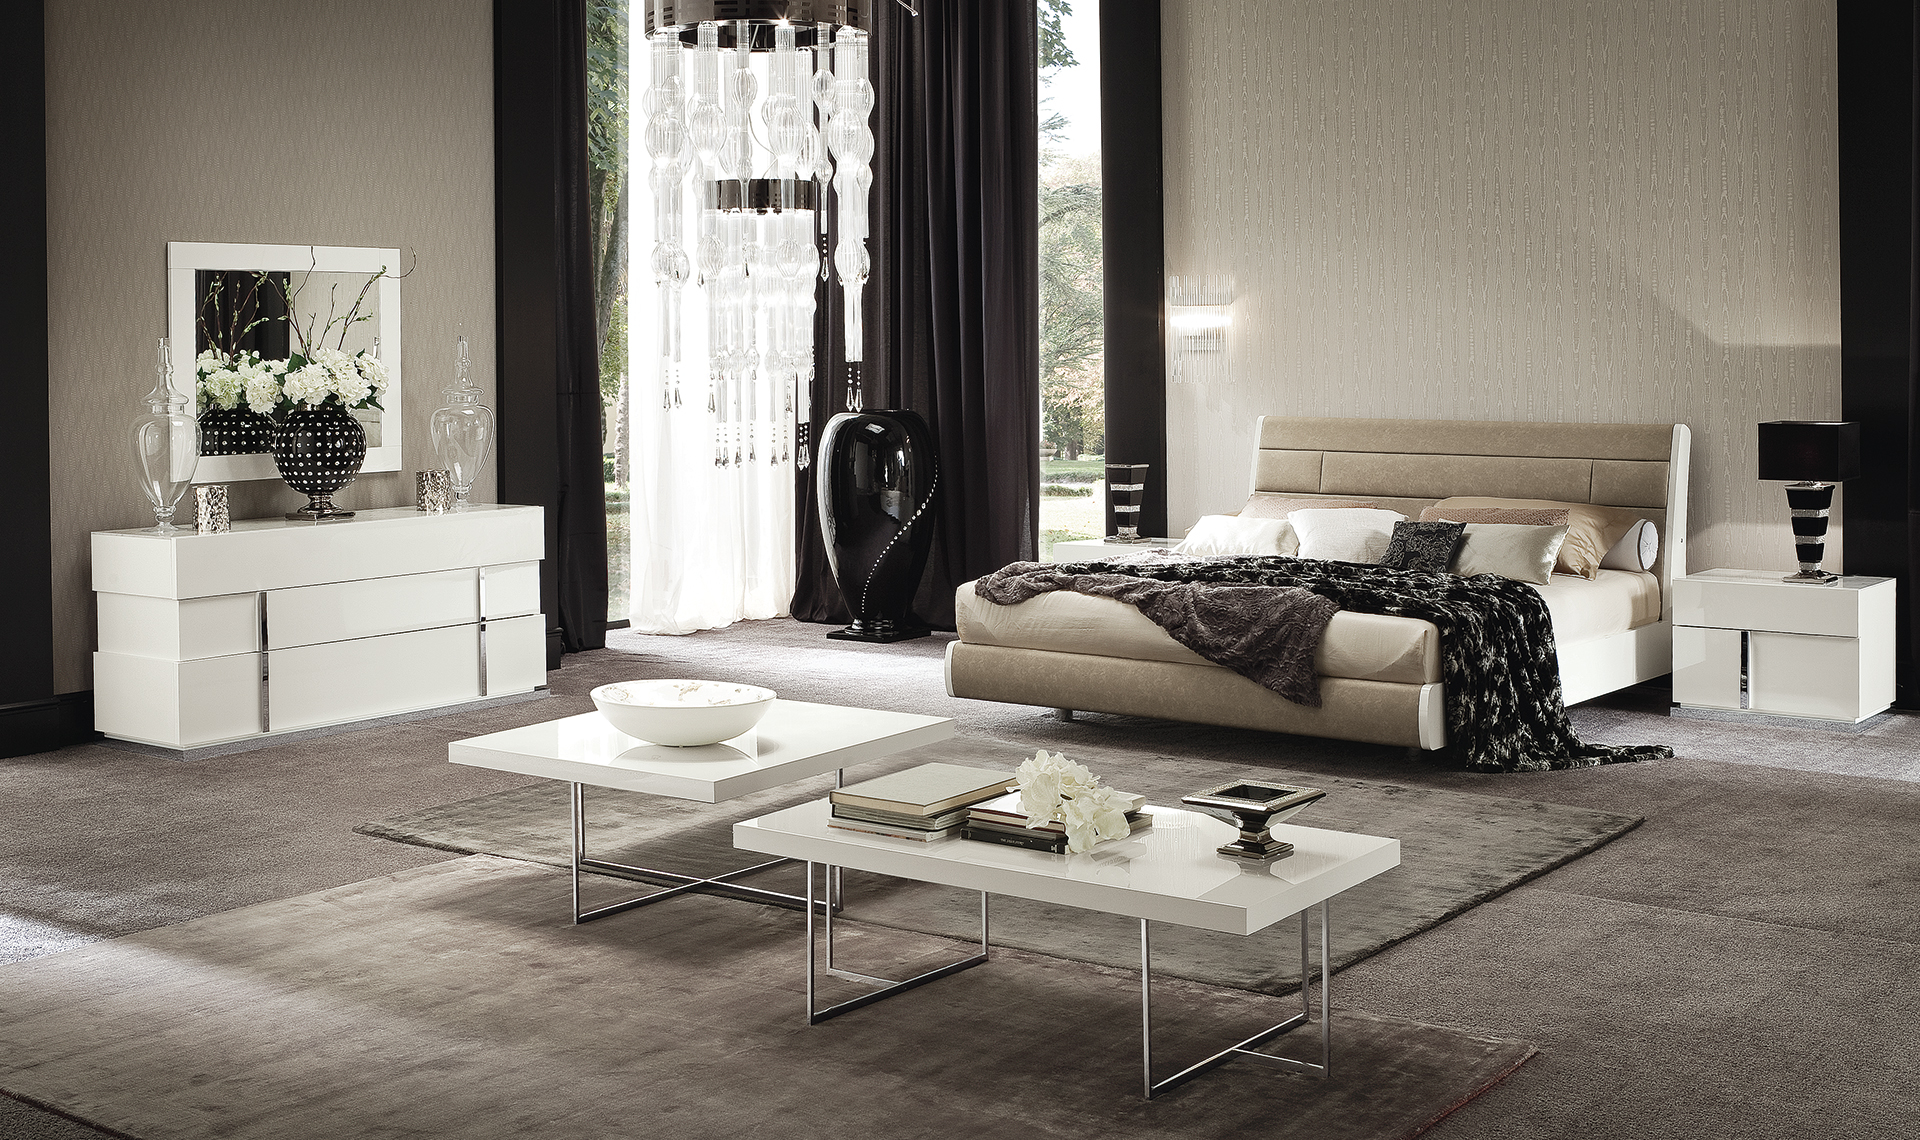 Canova Bedroom FIDIA 160 Bed Overview